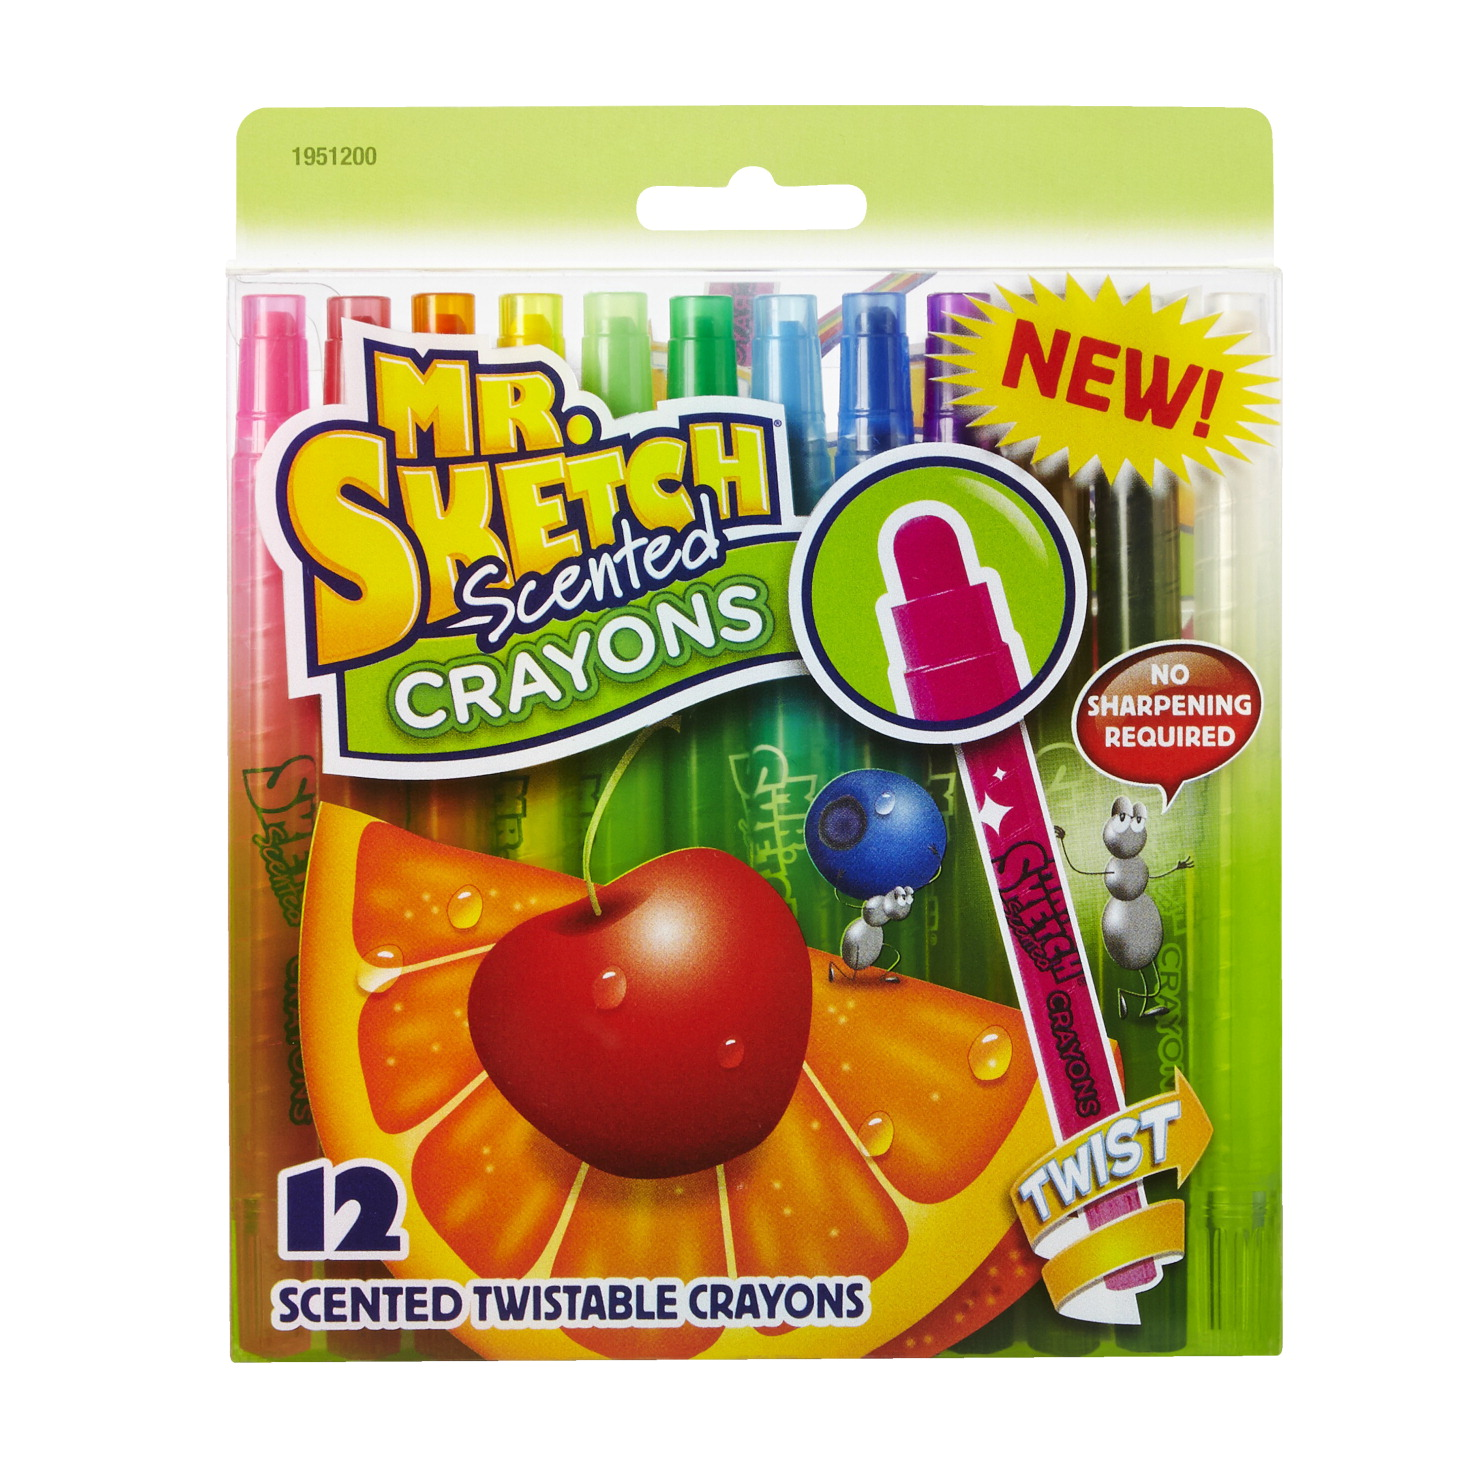 Mr. Sketch Scented Twistable Crayons, Set of 12